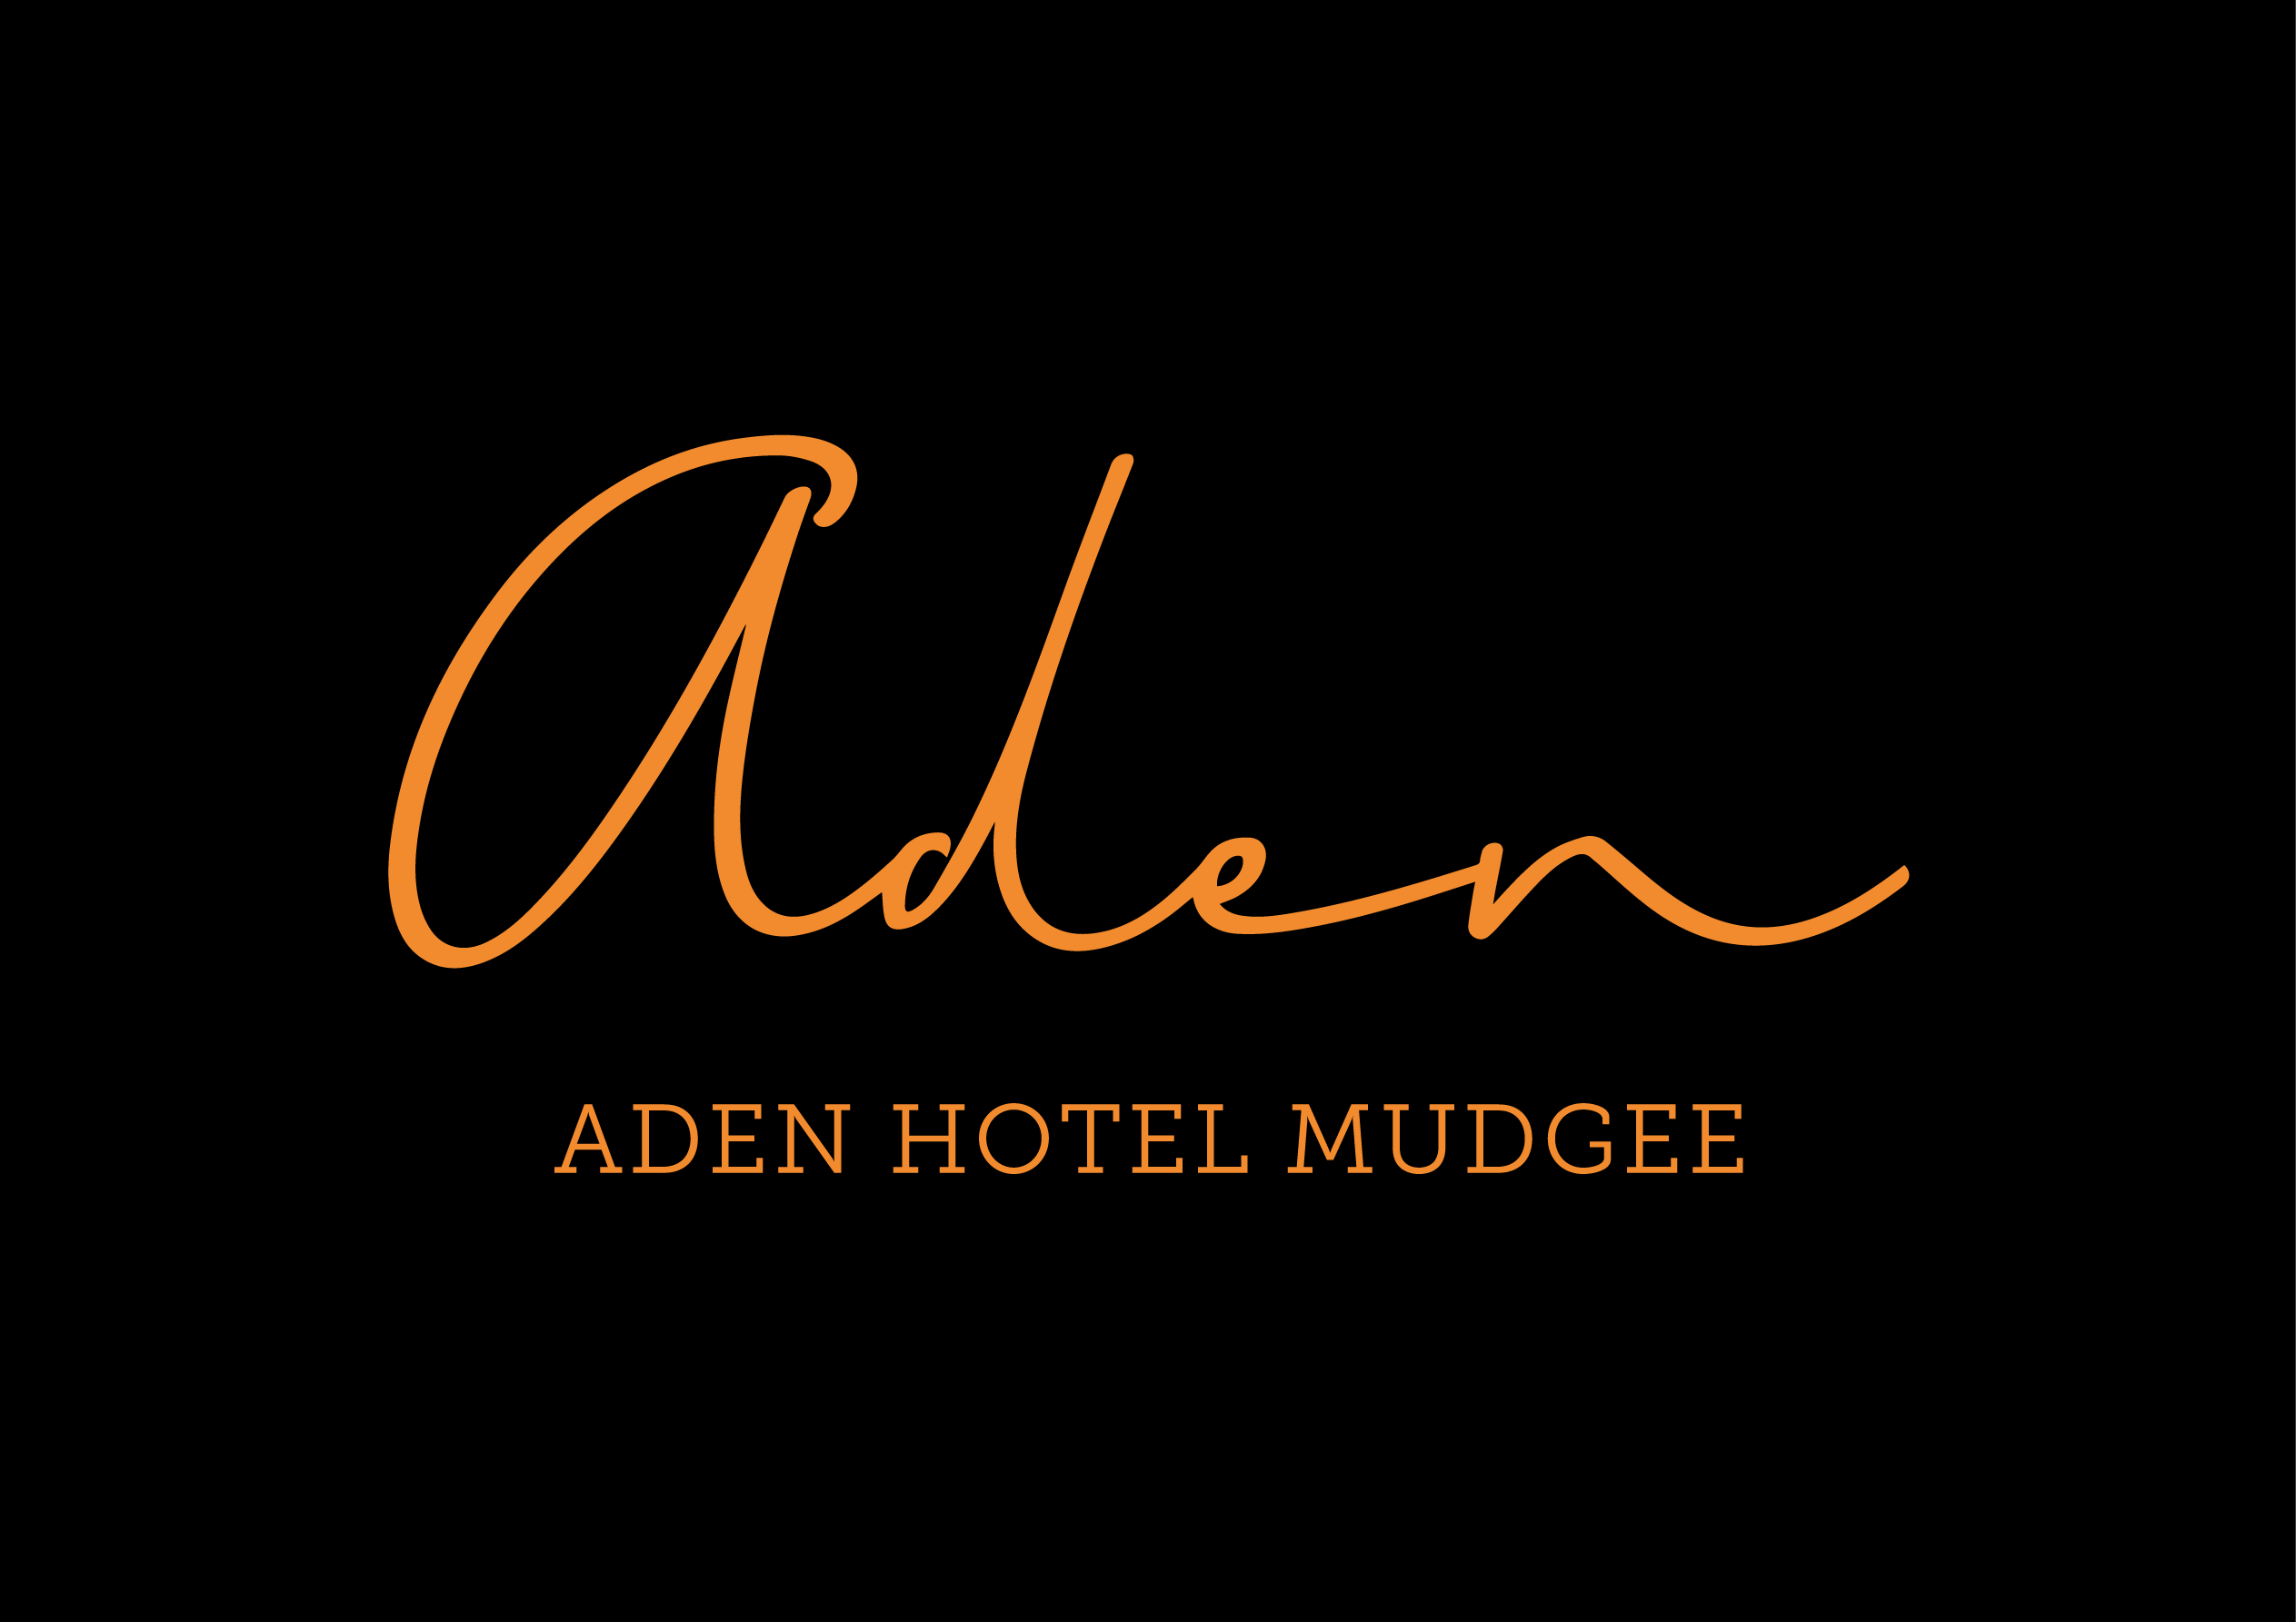 Comfort Inn Aden Hotel Mudgee - Accommodation Adelaide